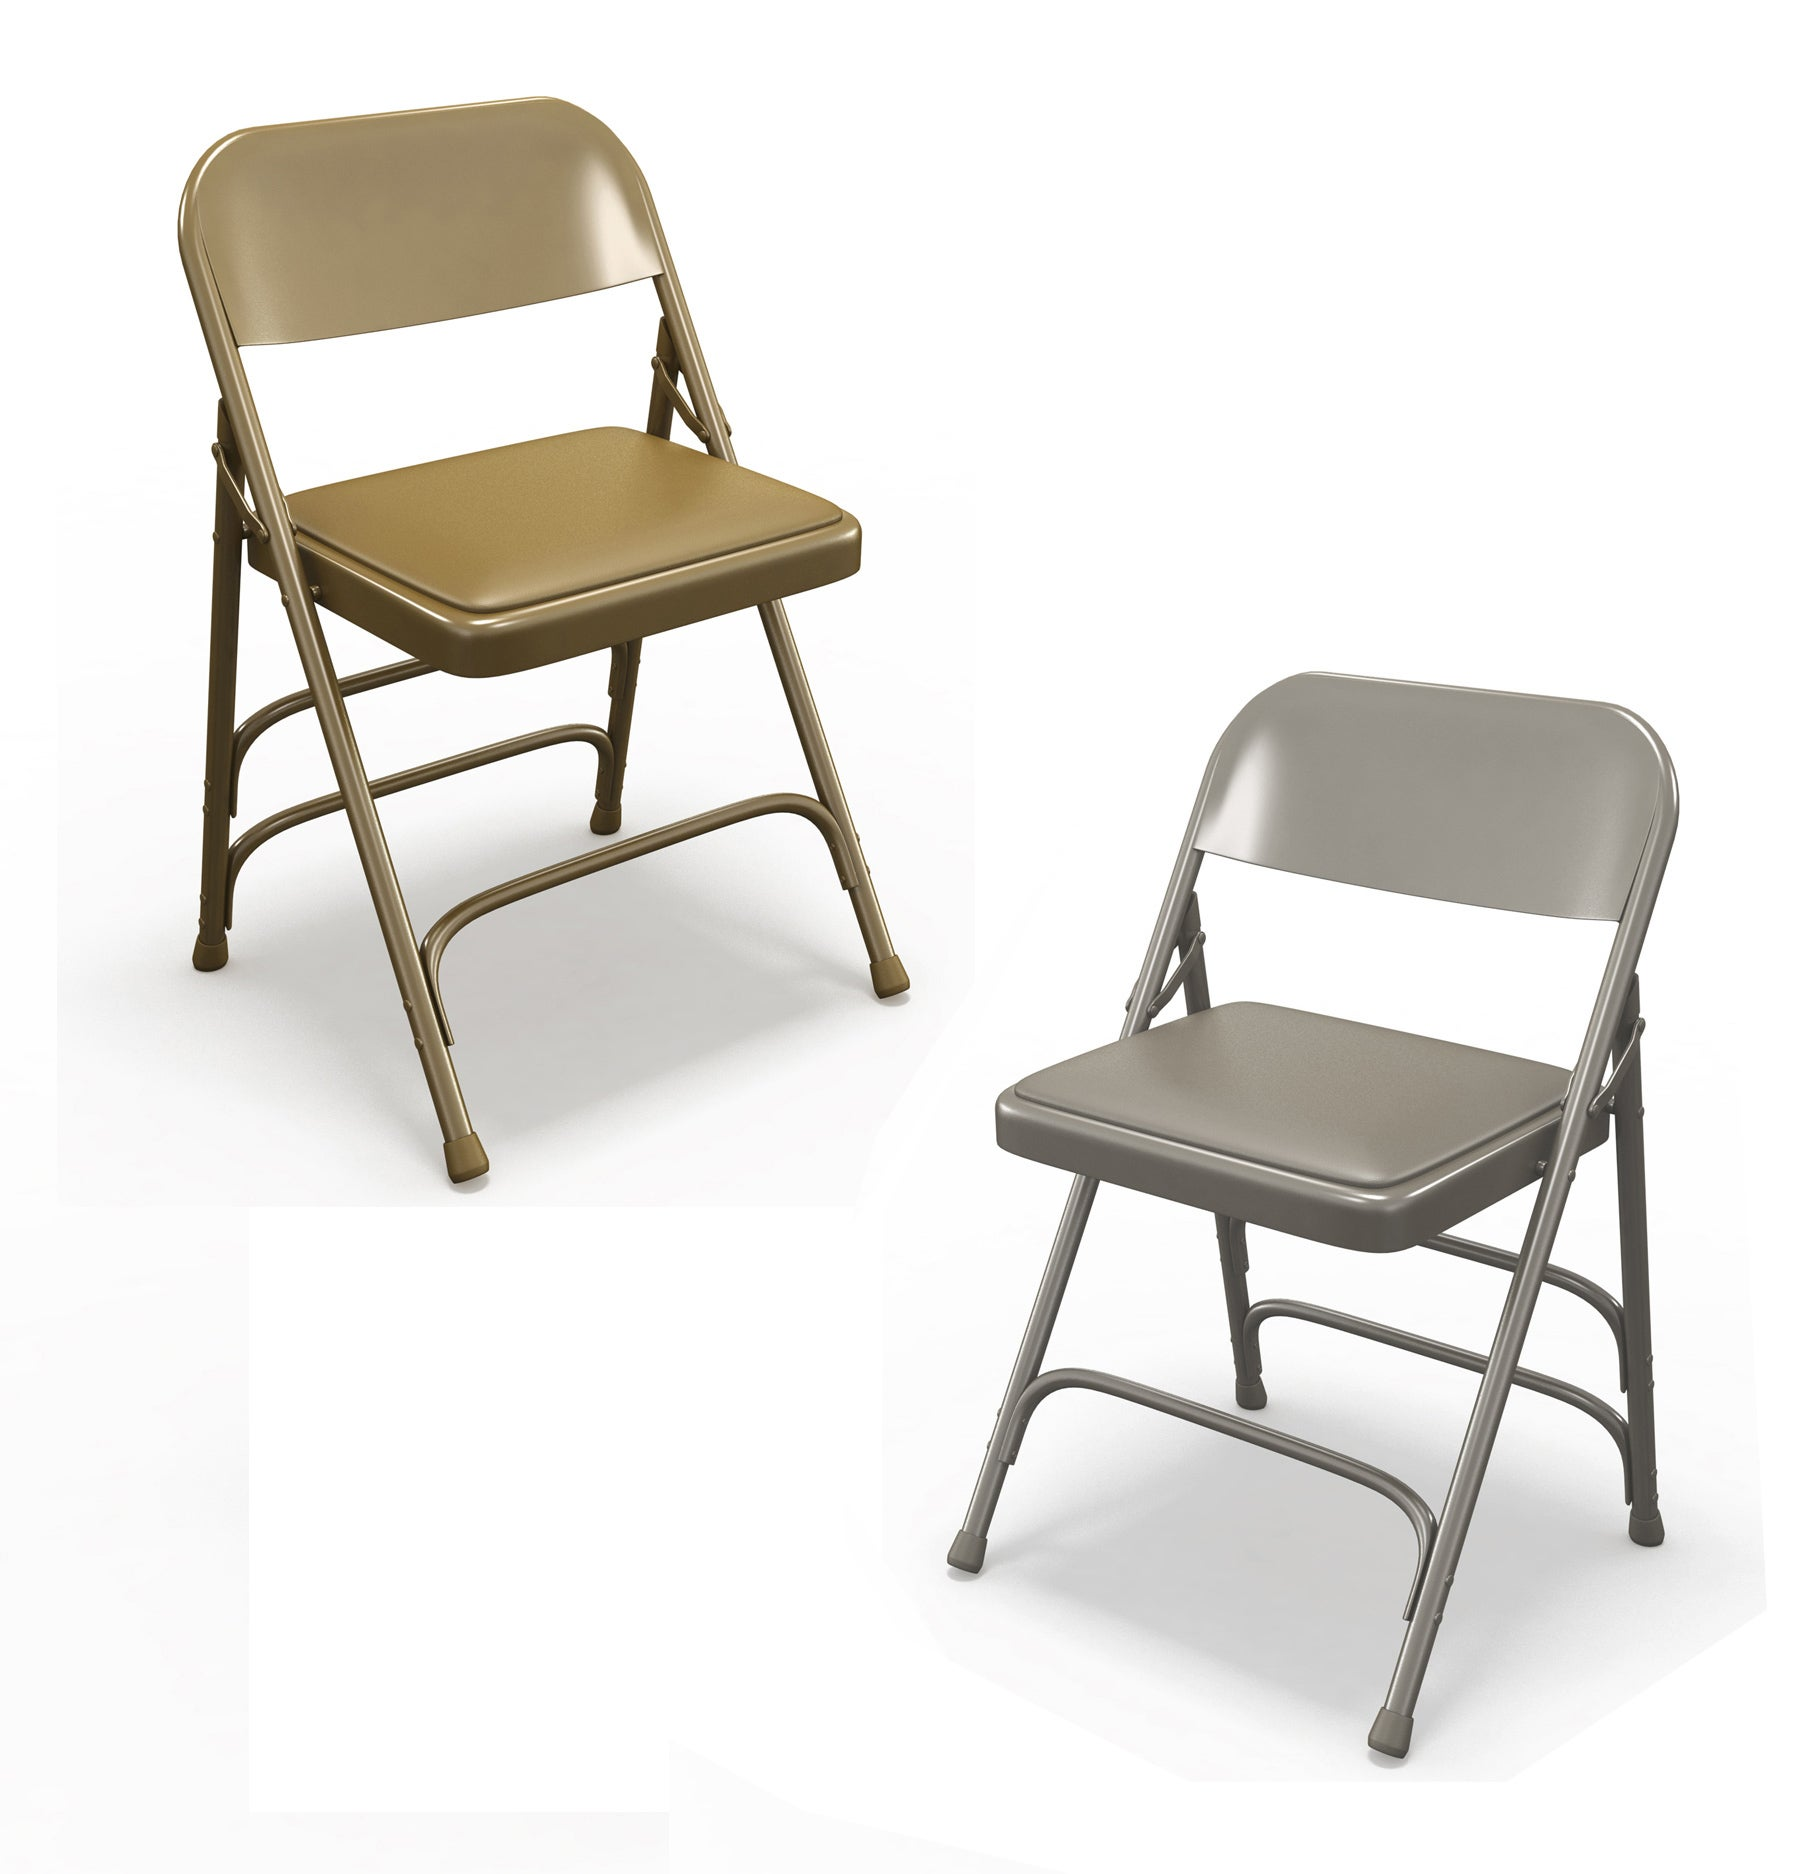 Mayline Event Series 2800FC Steel Folding Vinyl Seat Chairs (4 per carton)